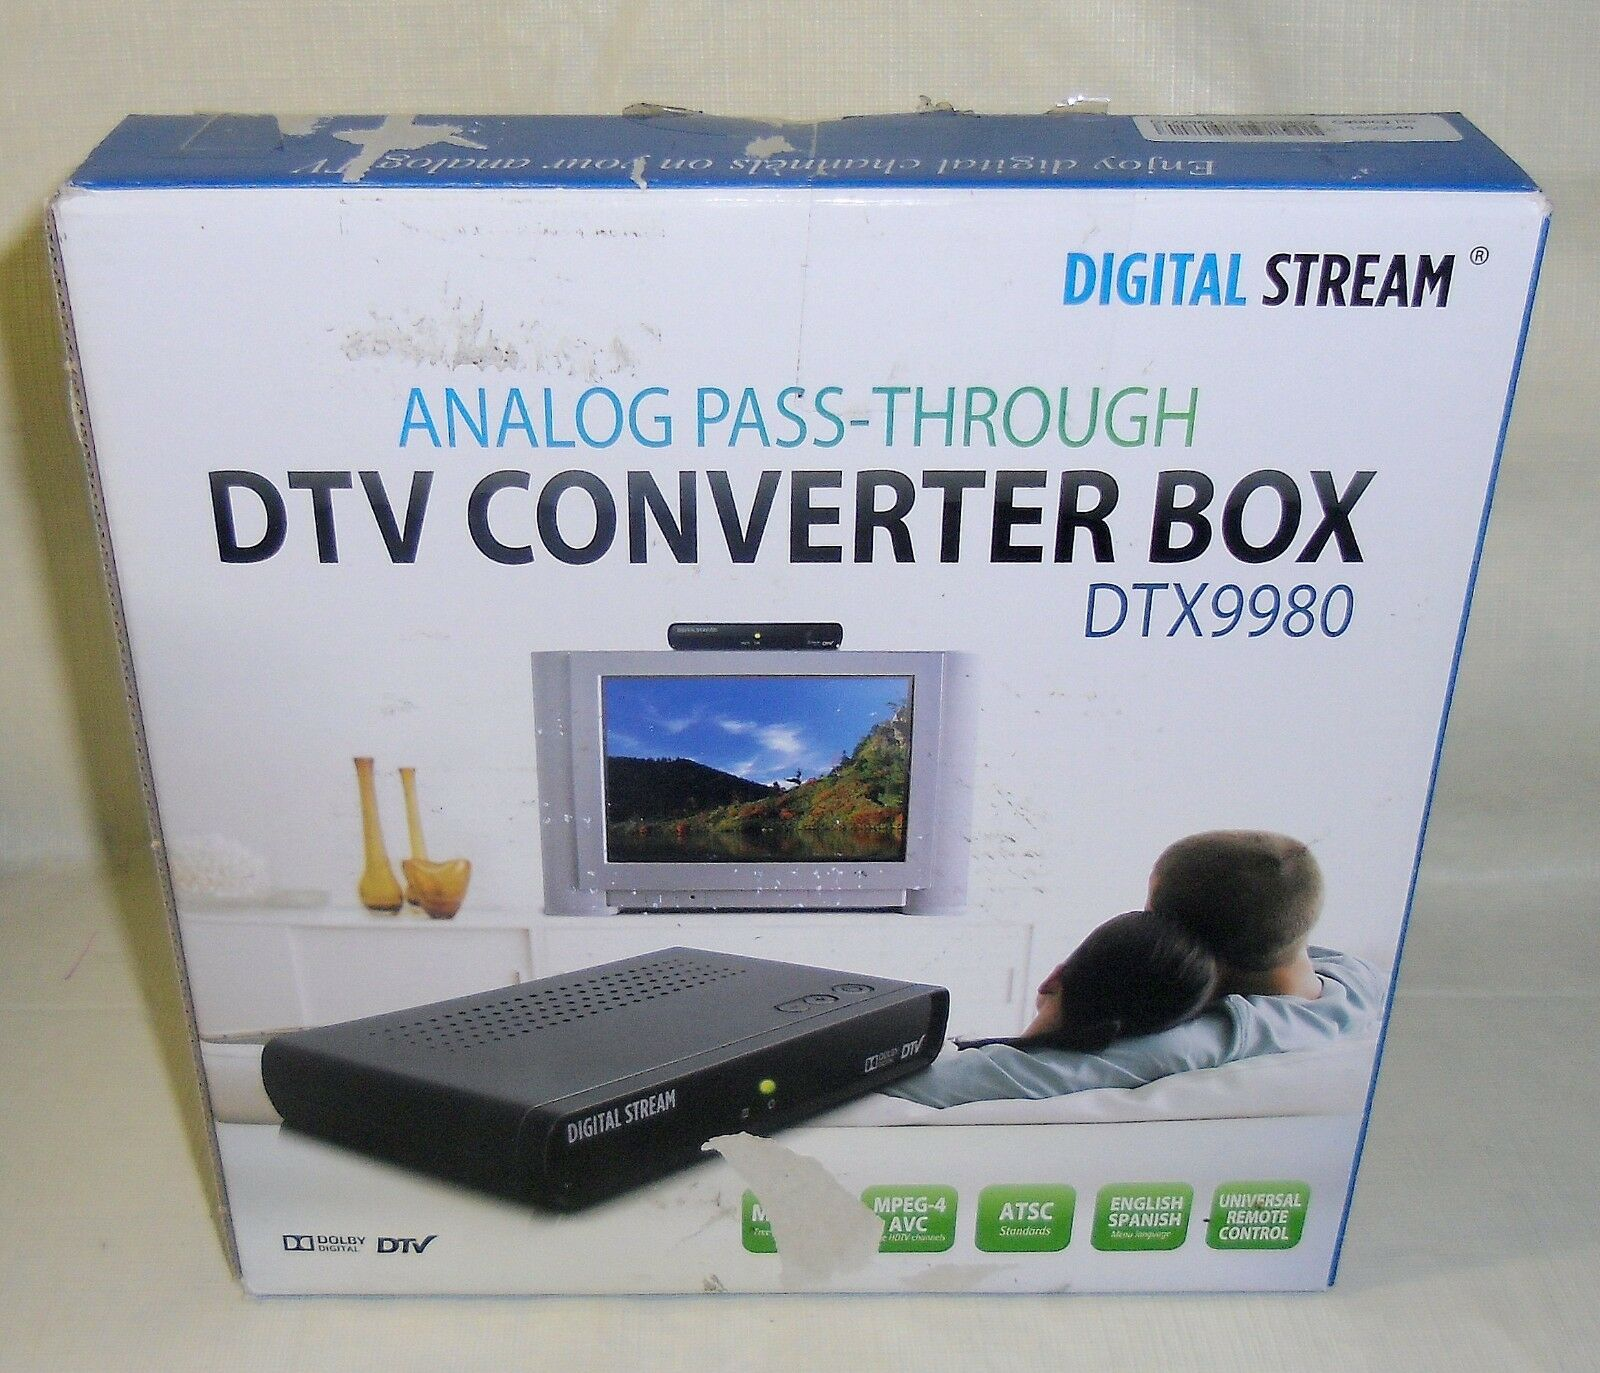 New Digital Stream DTX9980 DTV Converter Box Upgrade of